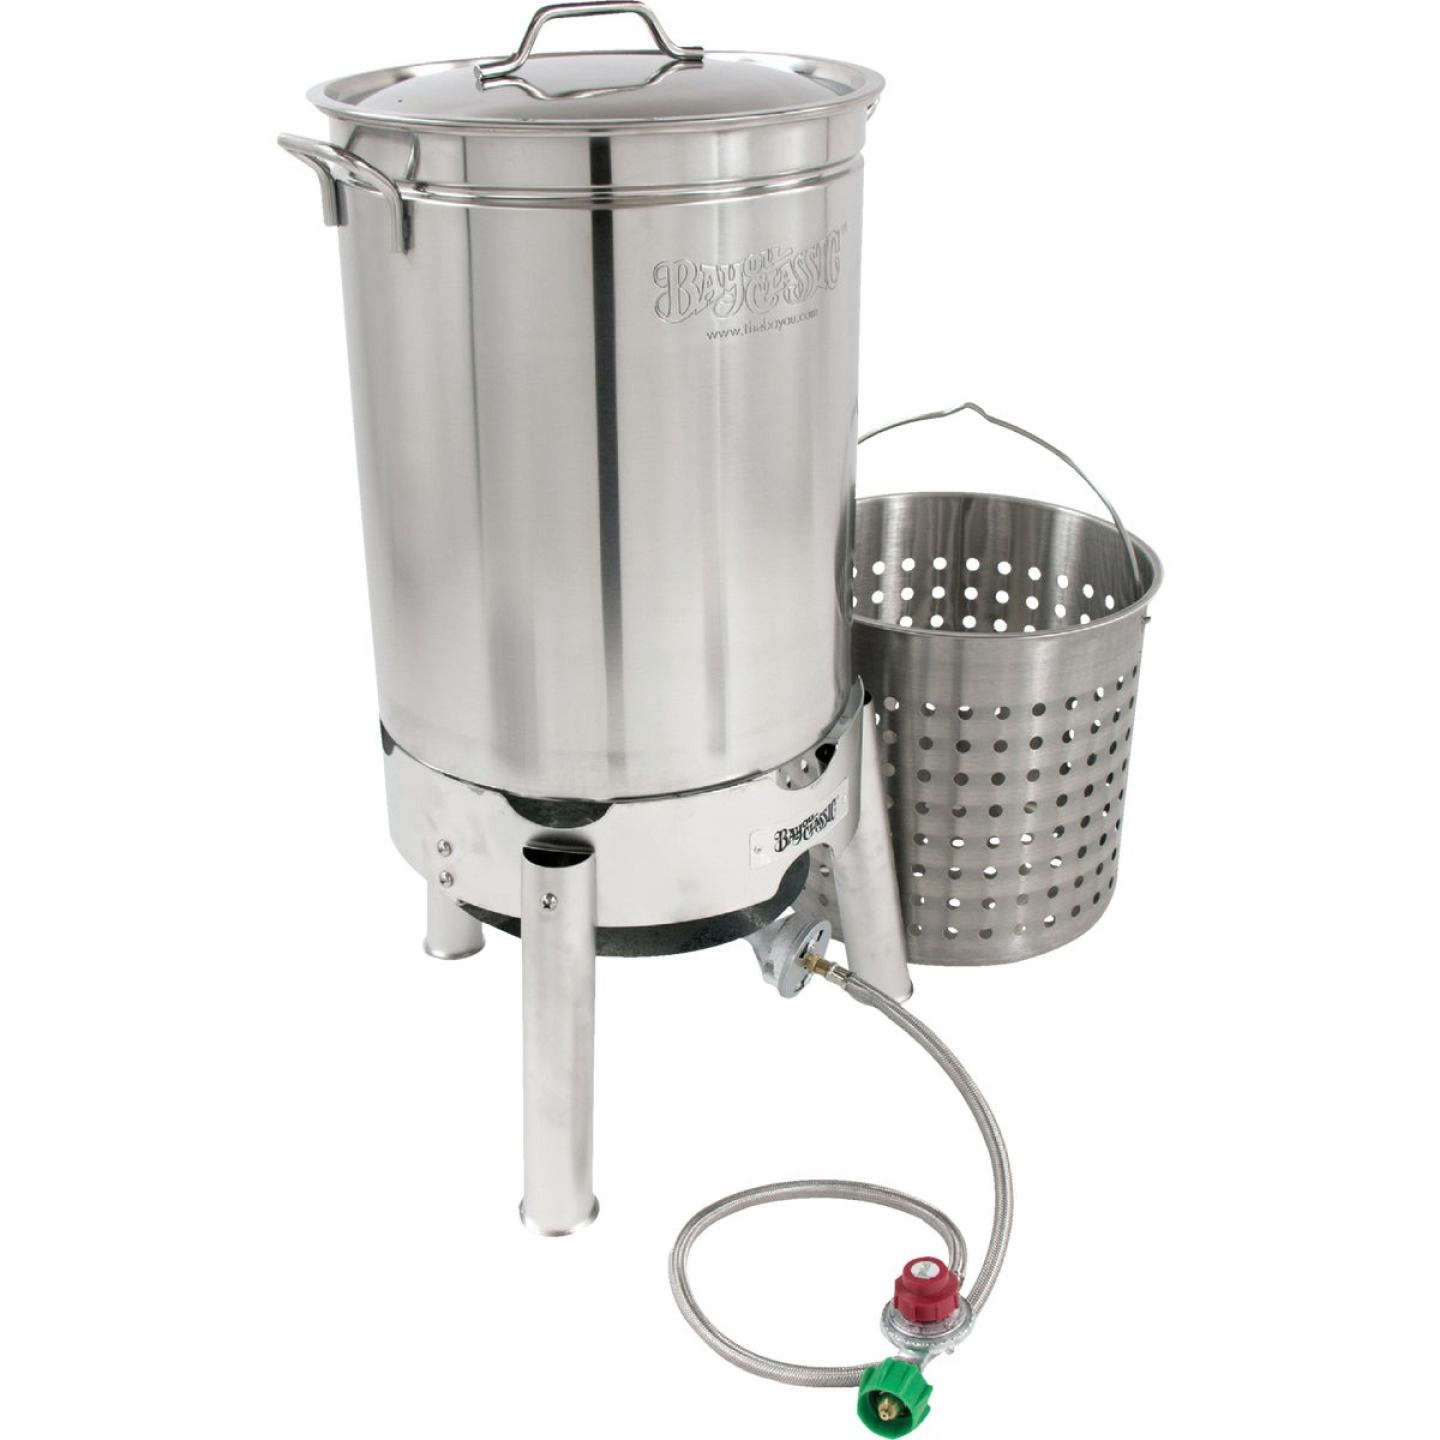 Bayou Classic Outdoor Cooker Kit Image 1